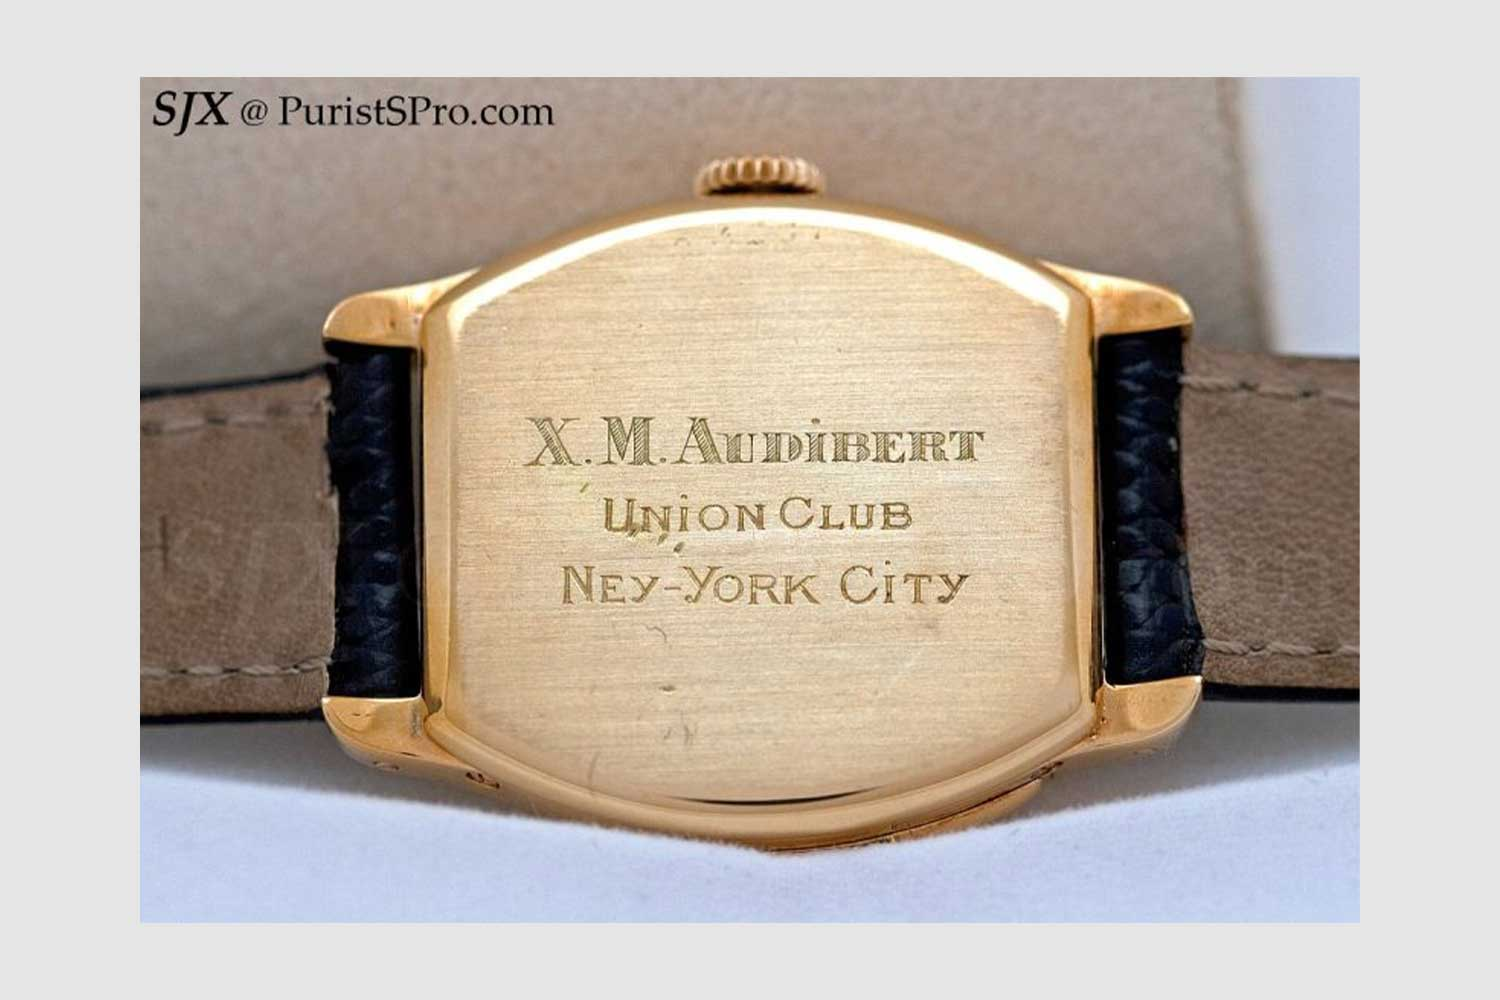 The 1928, Cartier 18K gold tonneau-shaped minute repeating wristwatch that Wei makes reference to above with the Cartier customer's name, his private club and New York city engraved on the back of the watch but with New York spelt wrongly (Image: SJX @ PuristSPro.com)